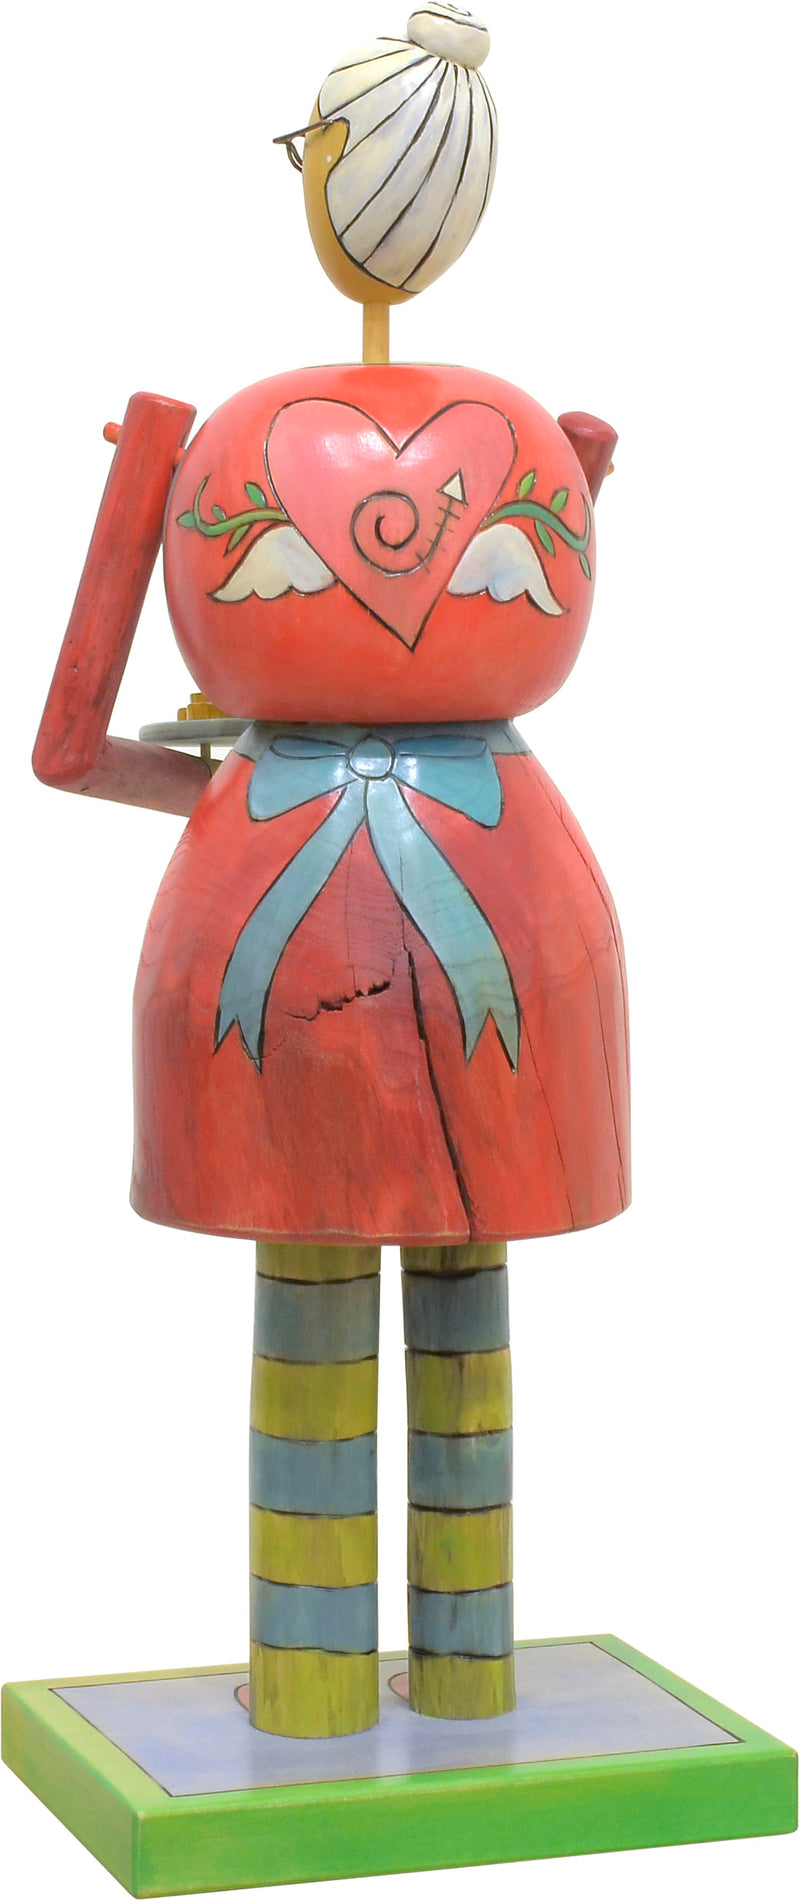 Mrs. Claus Sculpture